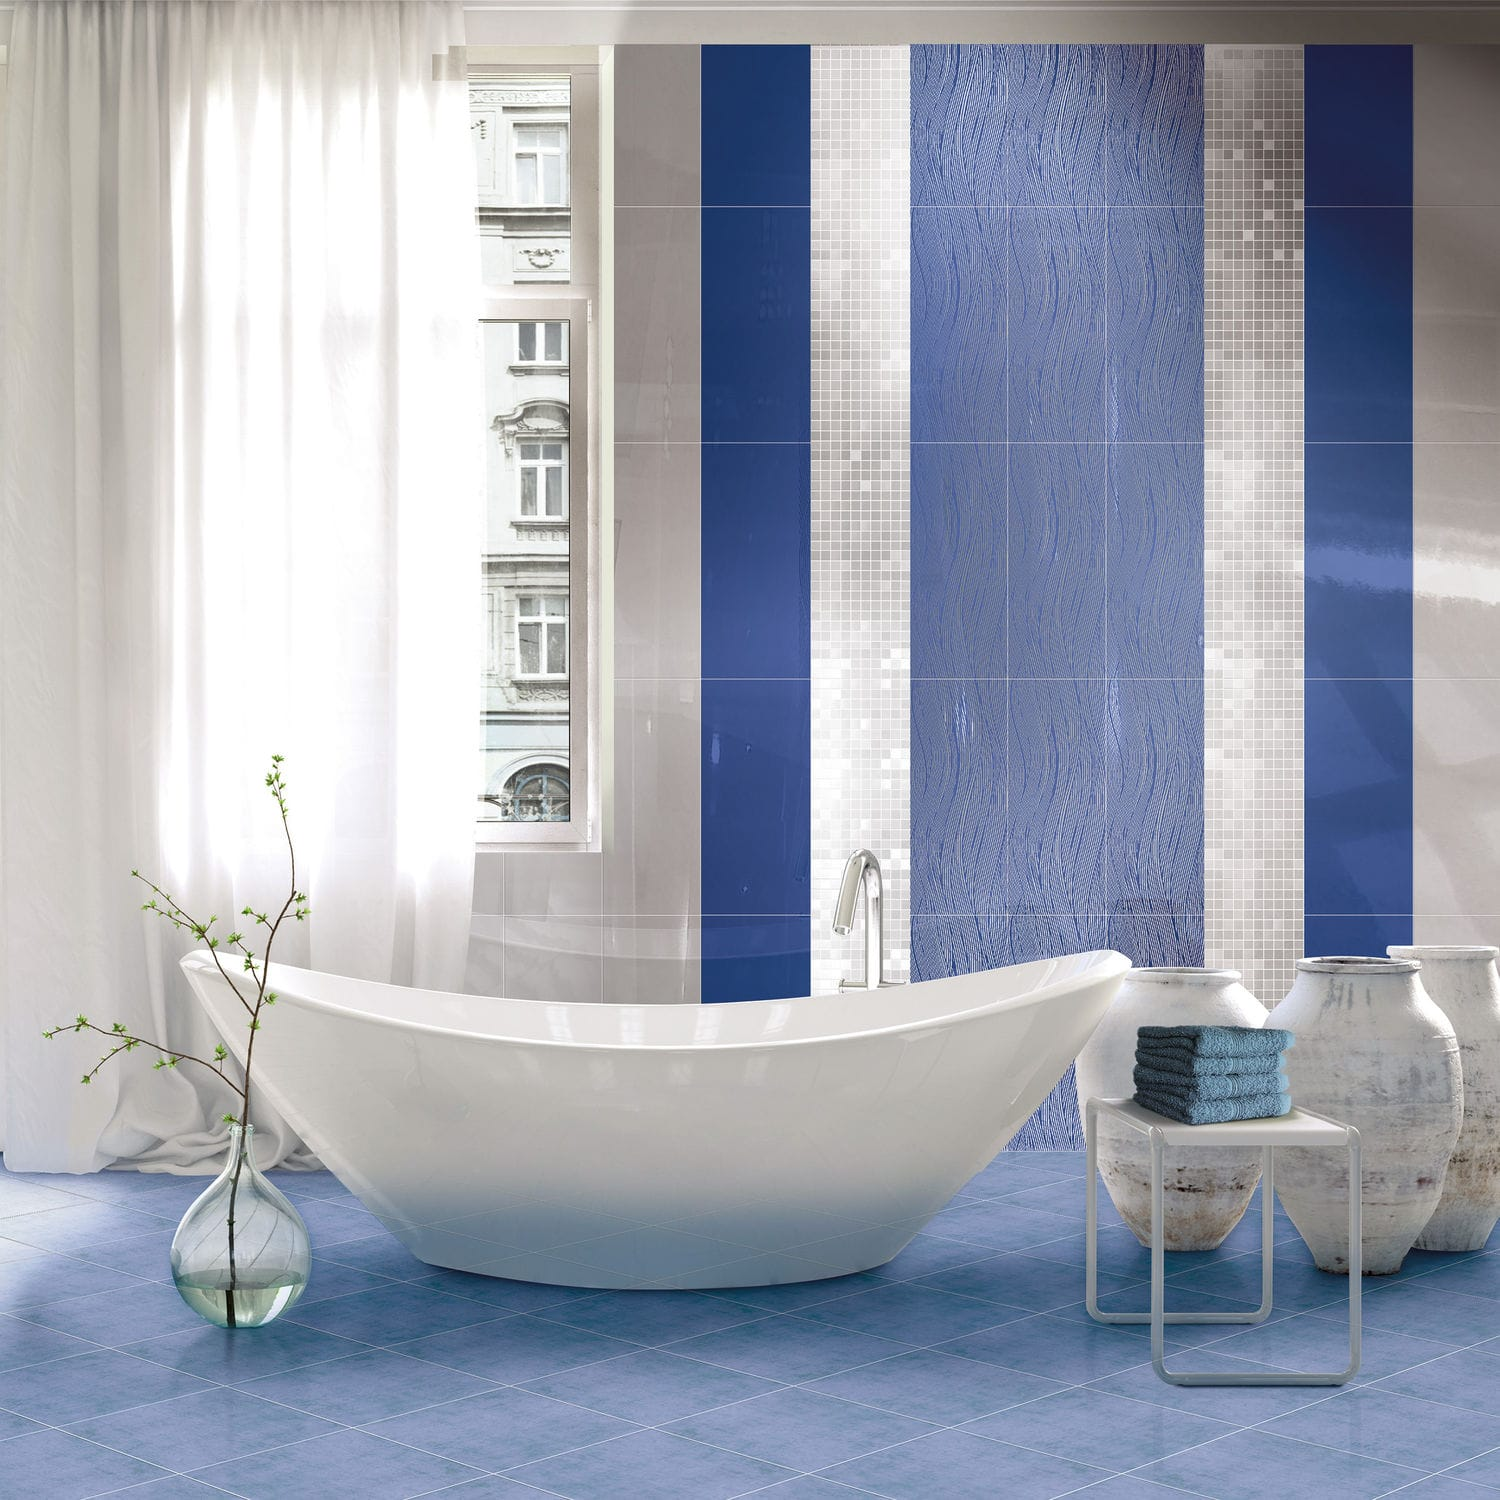 Bathroom tile / wall / for floors / porcelain stoneware ...